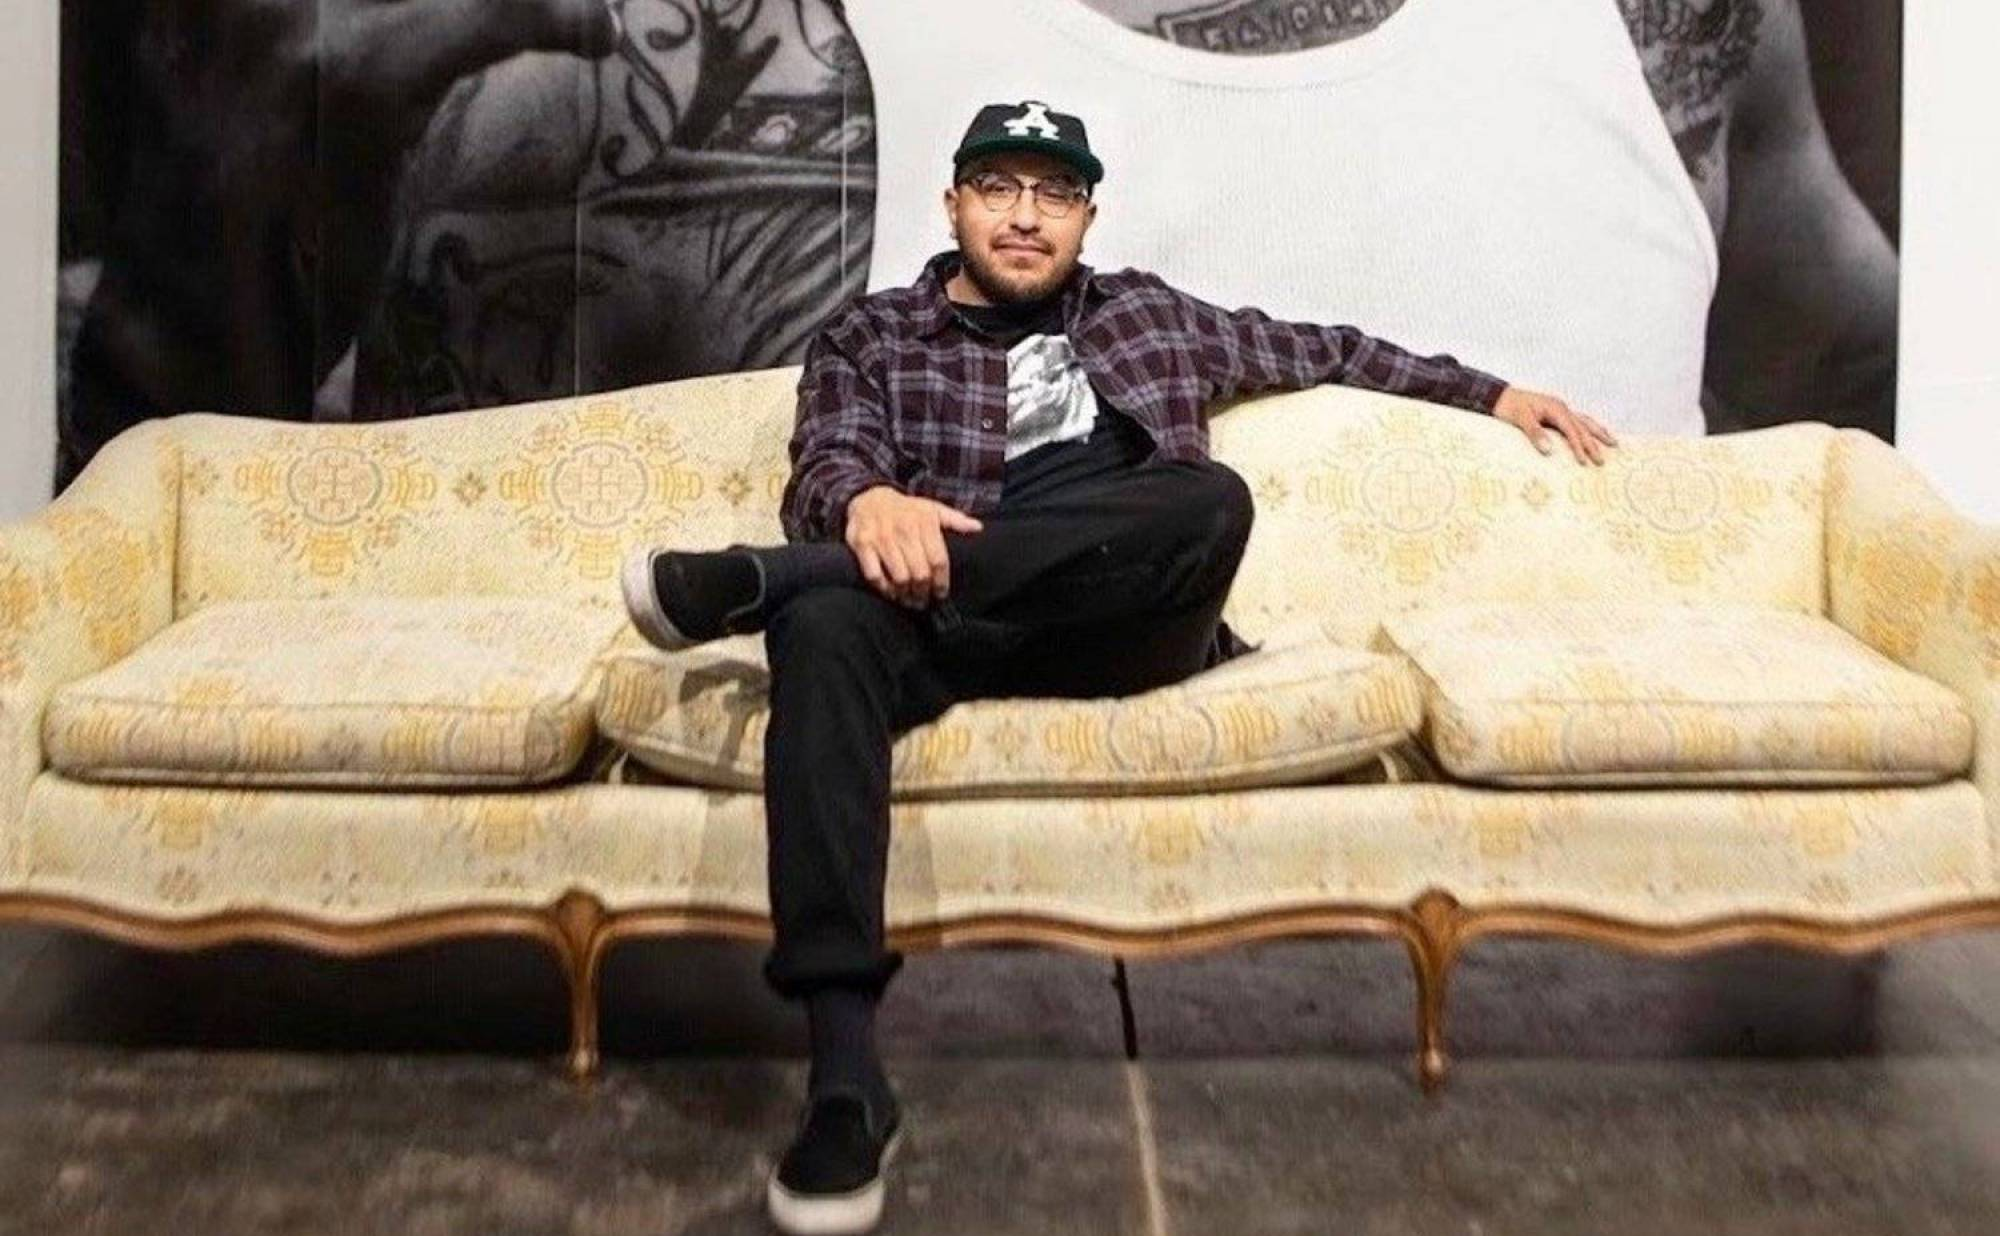 A photo of documentary photographer Juan Fuentes, sitting in the center of a yellow upholstered couch. There is a large-scale floor-to-ceiling black and white image on the wall behind him.